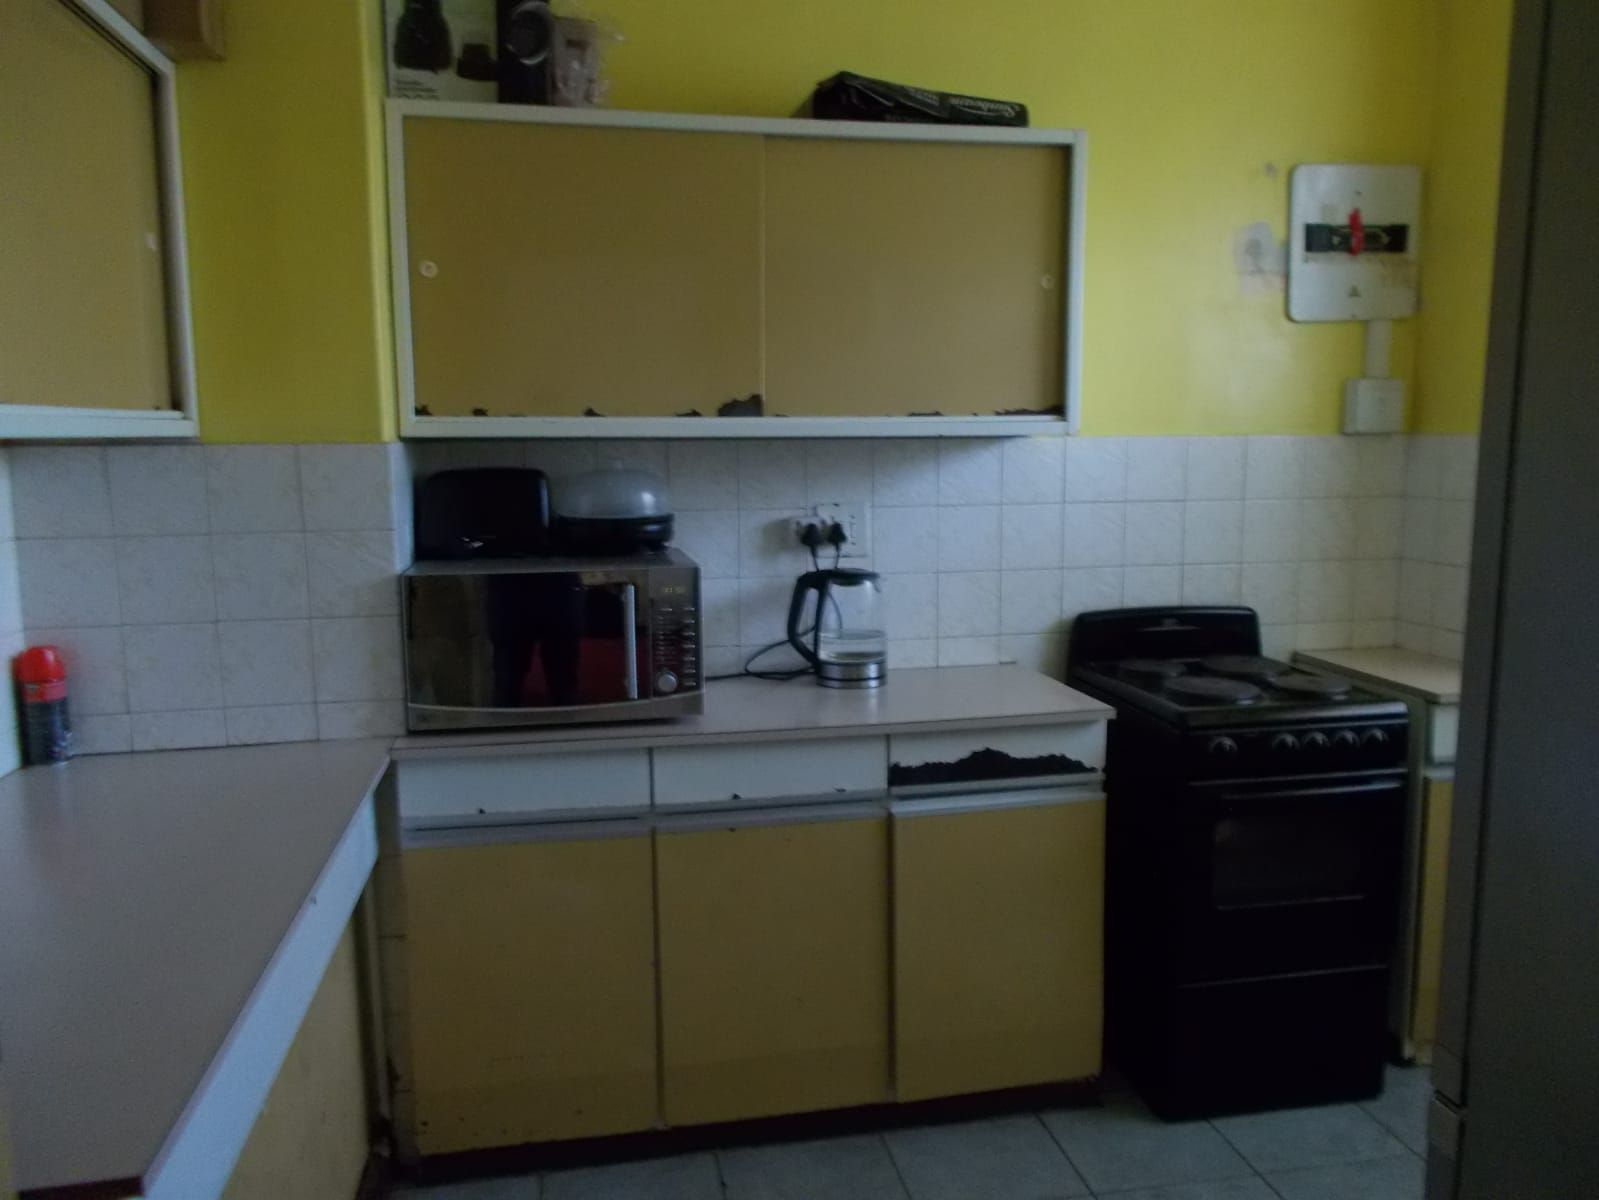 Apartment in Hillbrow - WhatsApp Image 2021-01-12 at 13.03.10 (4).jpeg